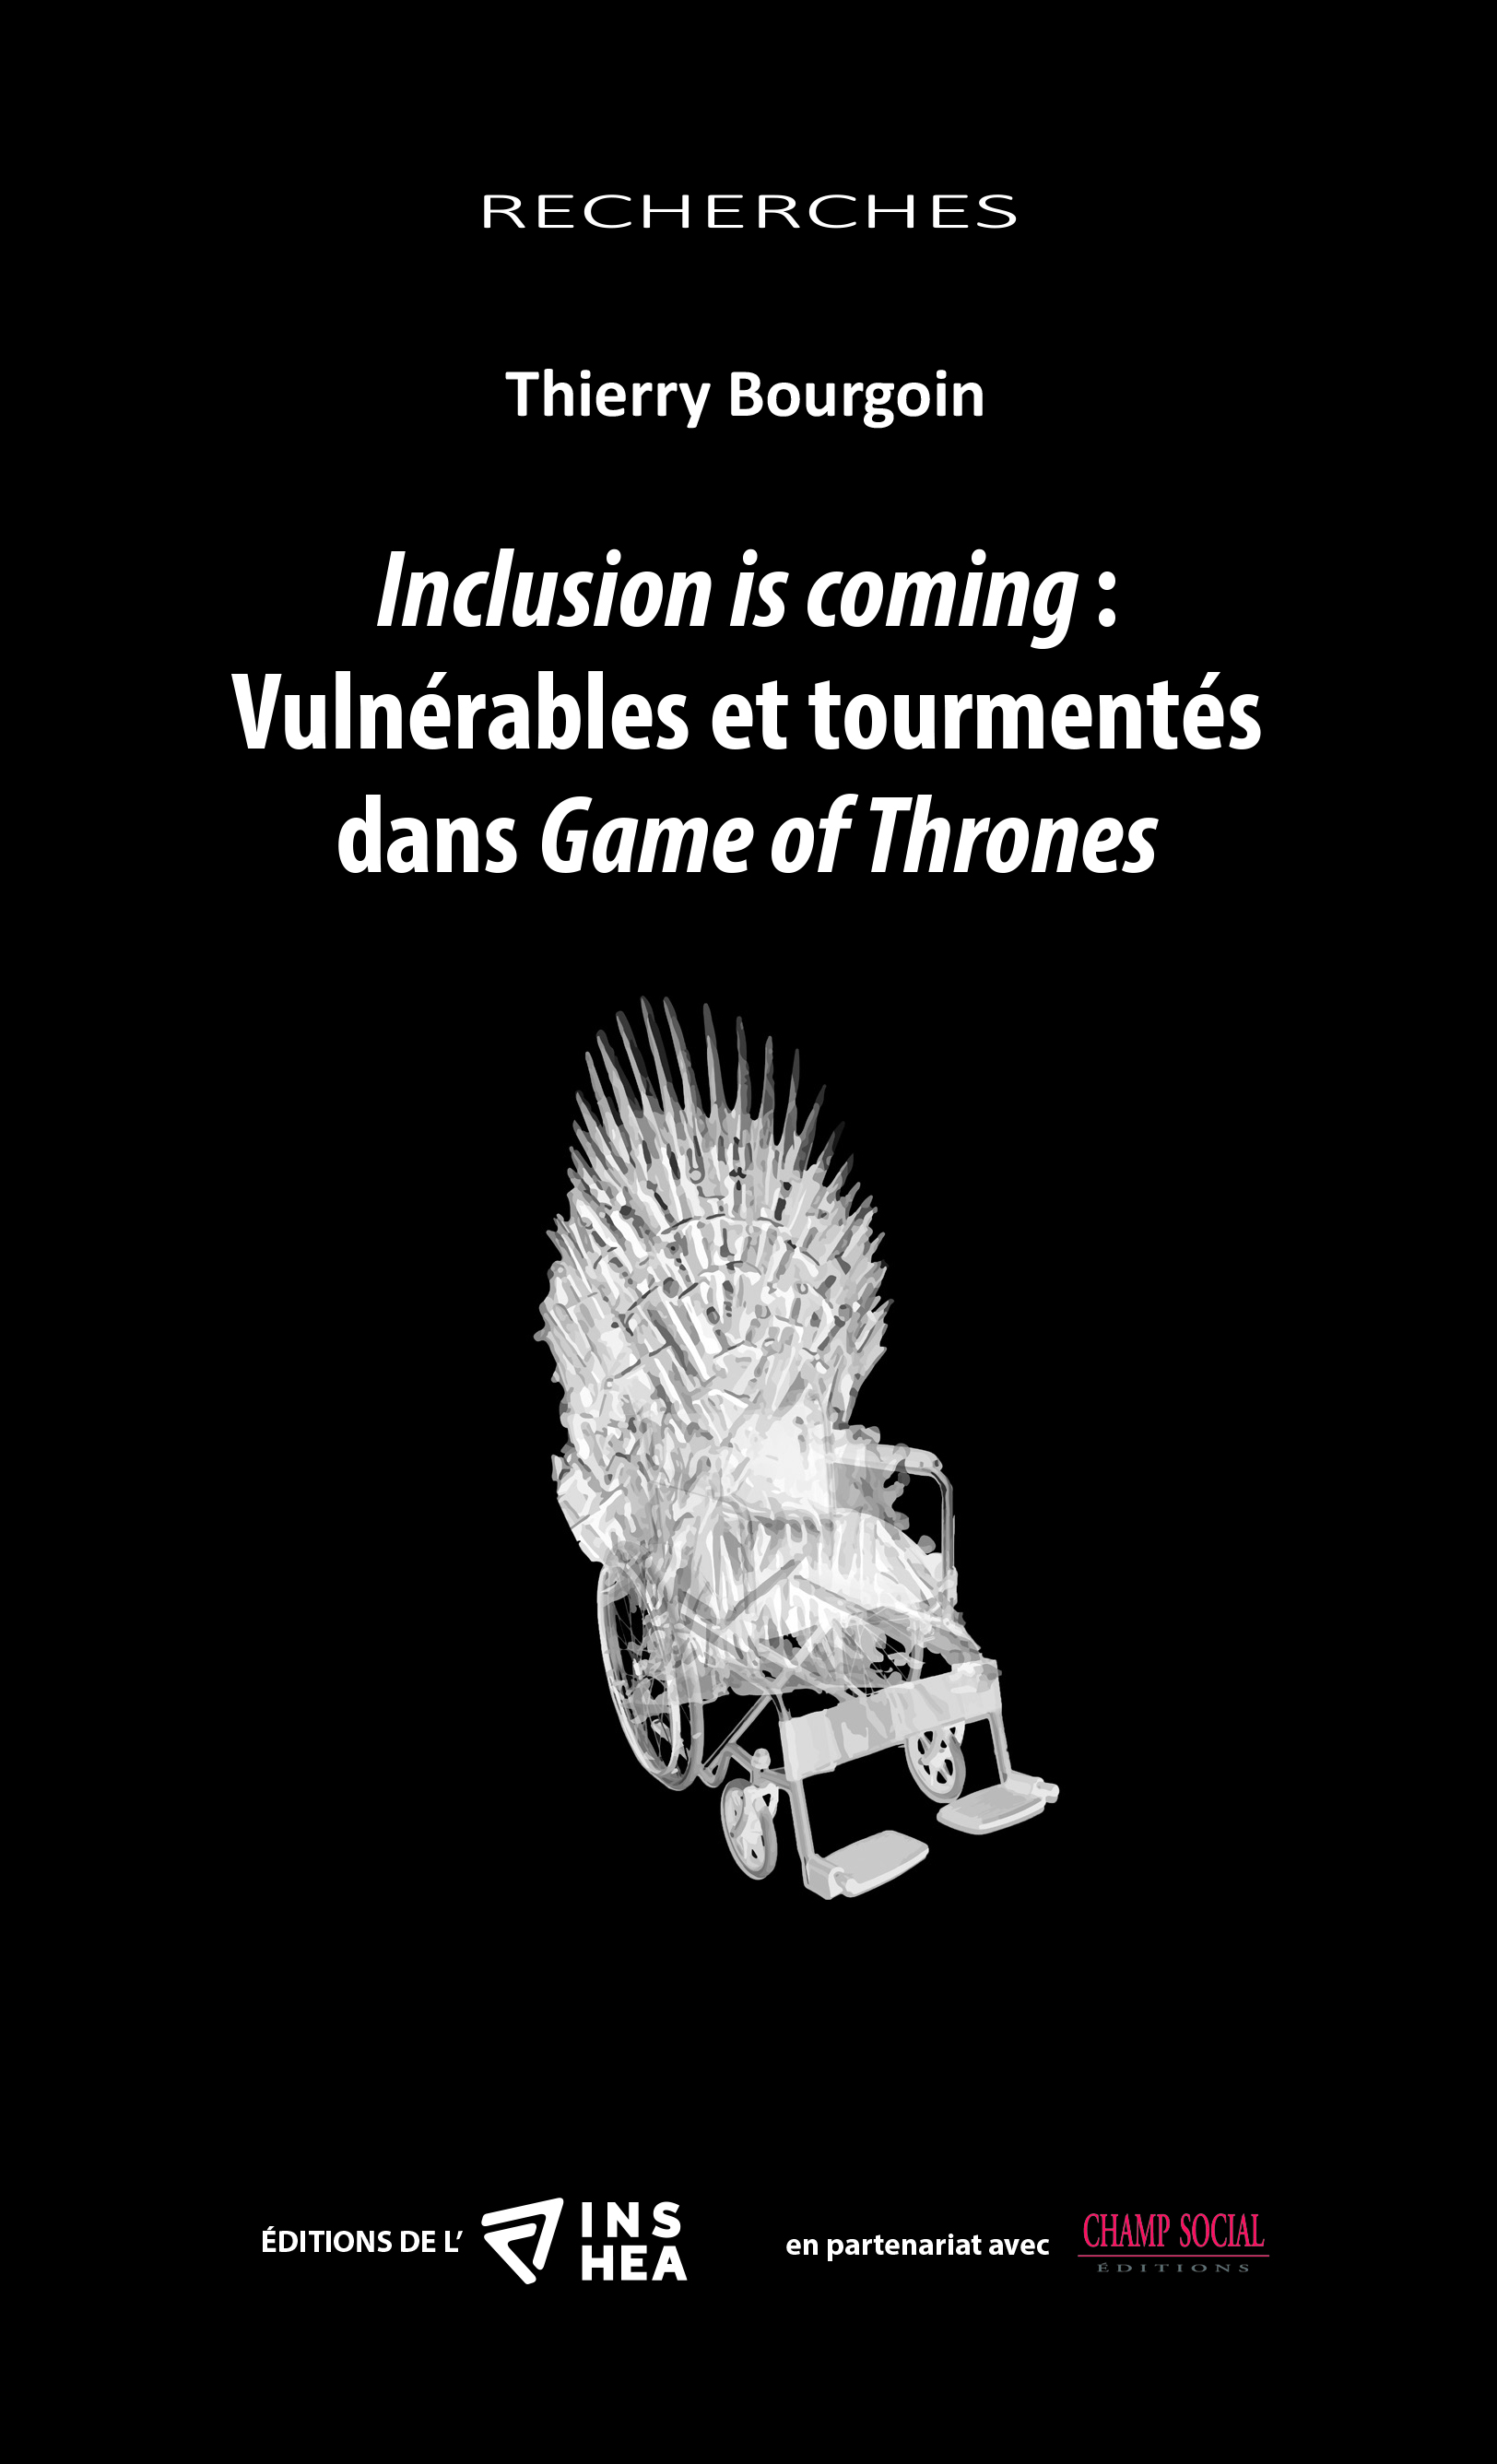 Inclusion is coming : Vulnérables et tourmentés dans Game of Thrones